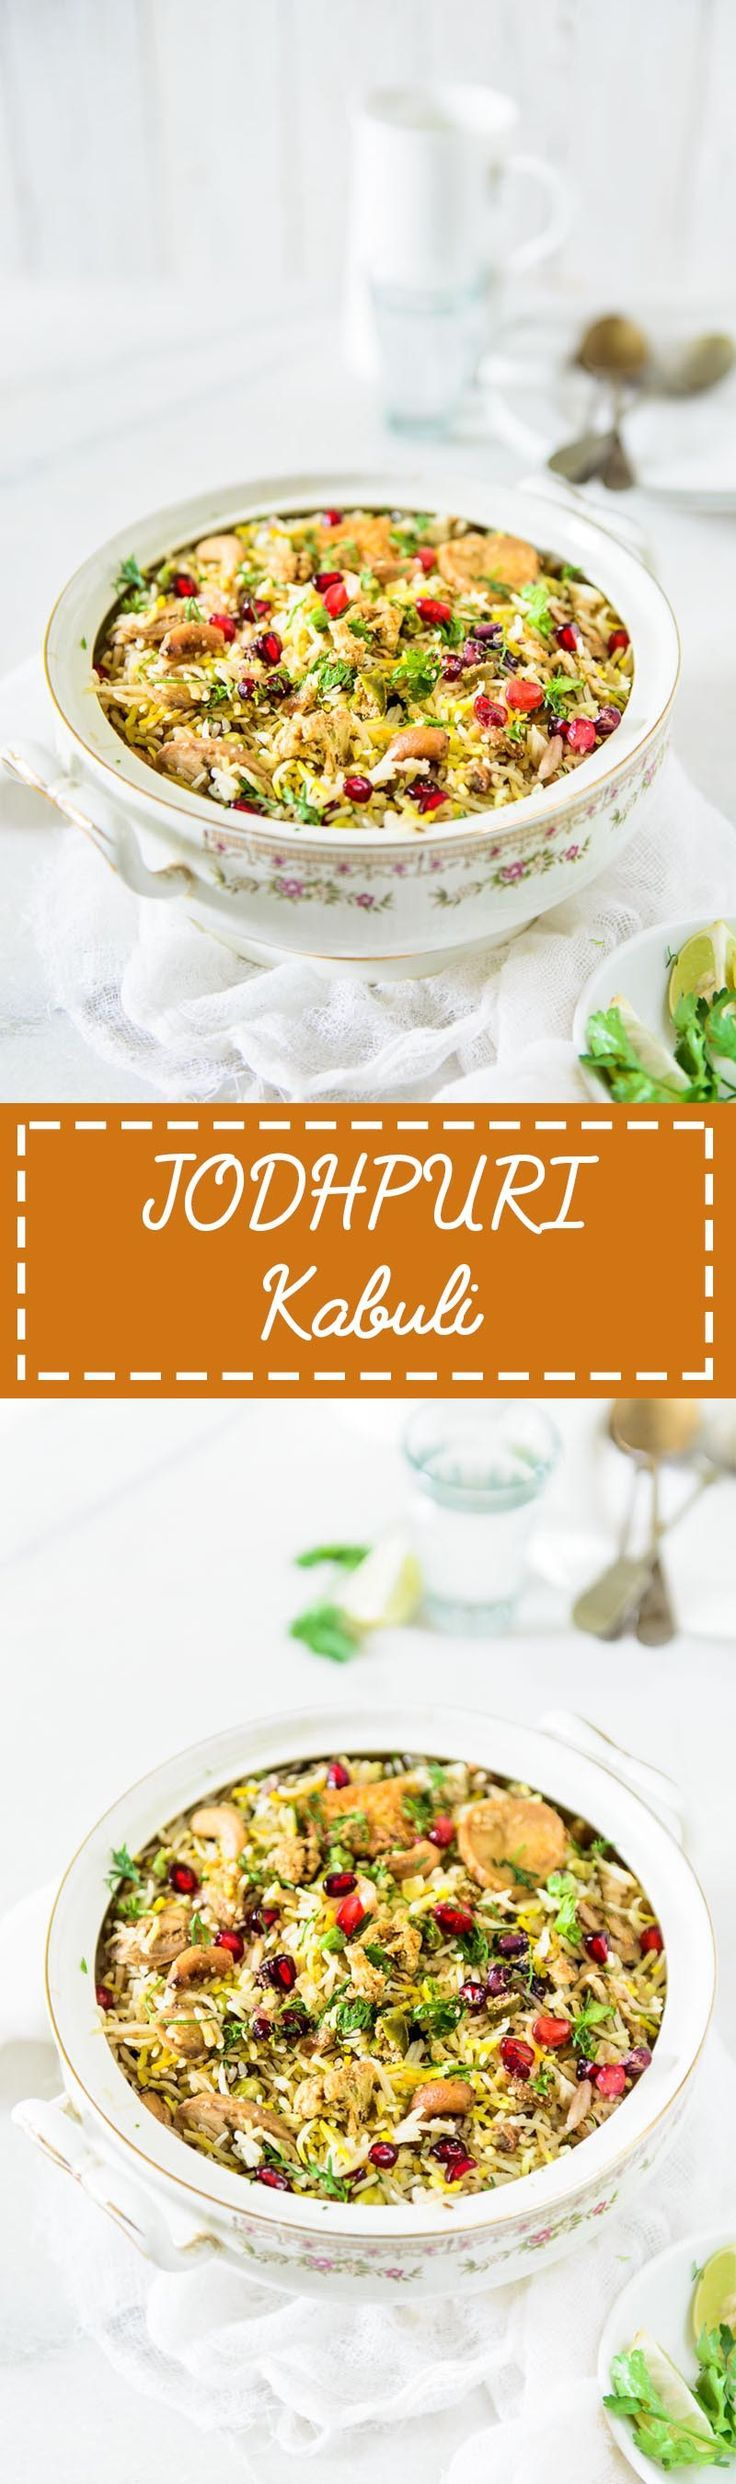 Jodhpuri Kabuli is a rice preparation from the Jodhpur city of Rajasthan. The rice is cooked along with vegetables and mild spices. #Indian #Rajasthani #Rice #Recipe